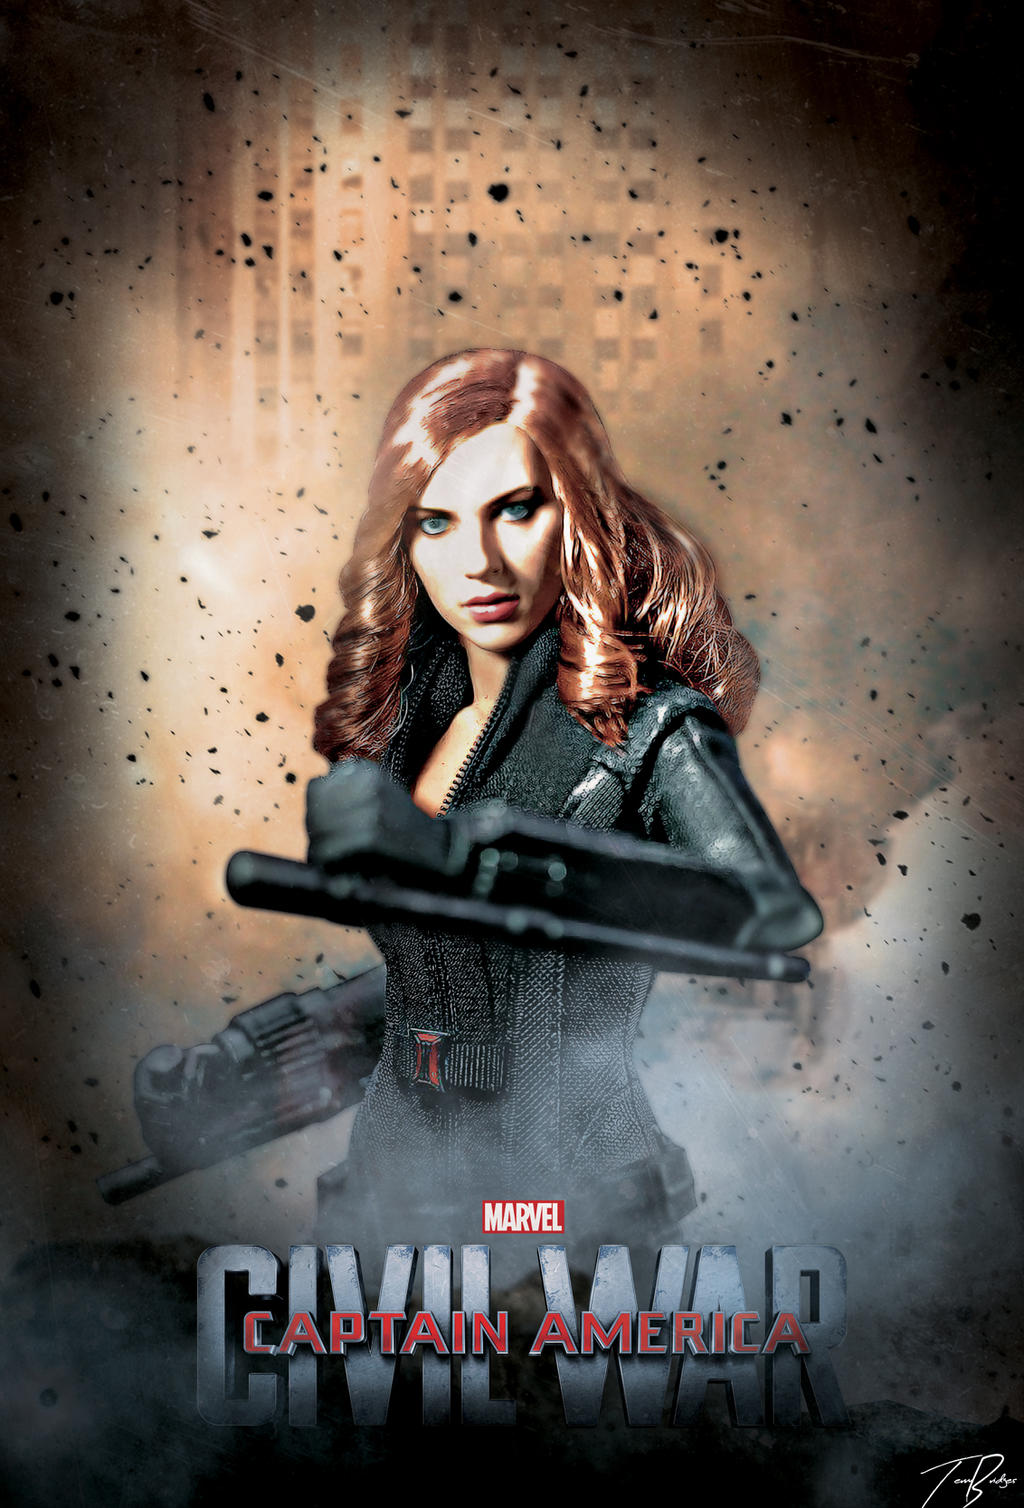 Captain America Civil War Poster : Black Widow by HZ ...Captain America 2 Poster Black Widow